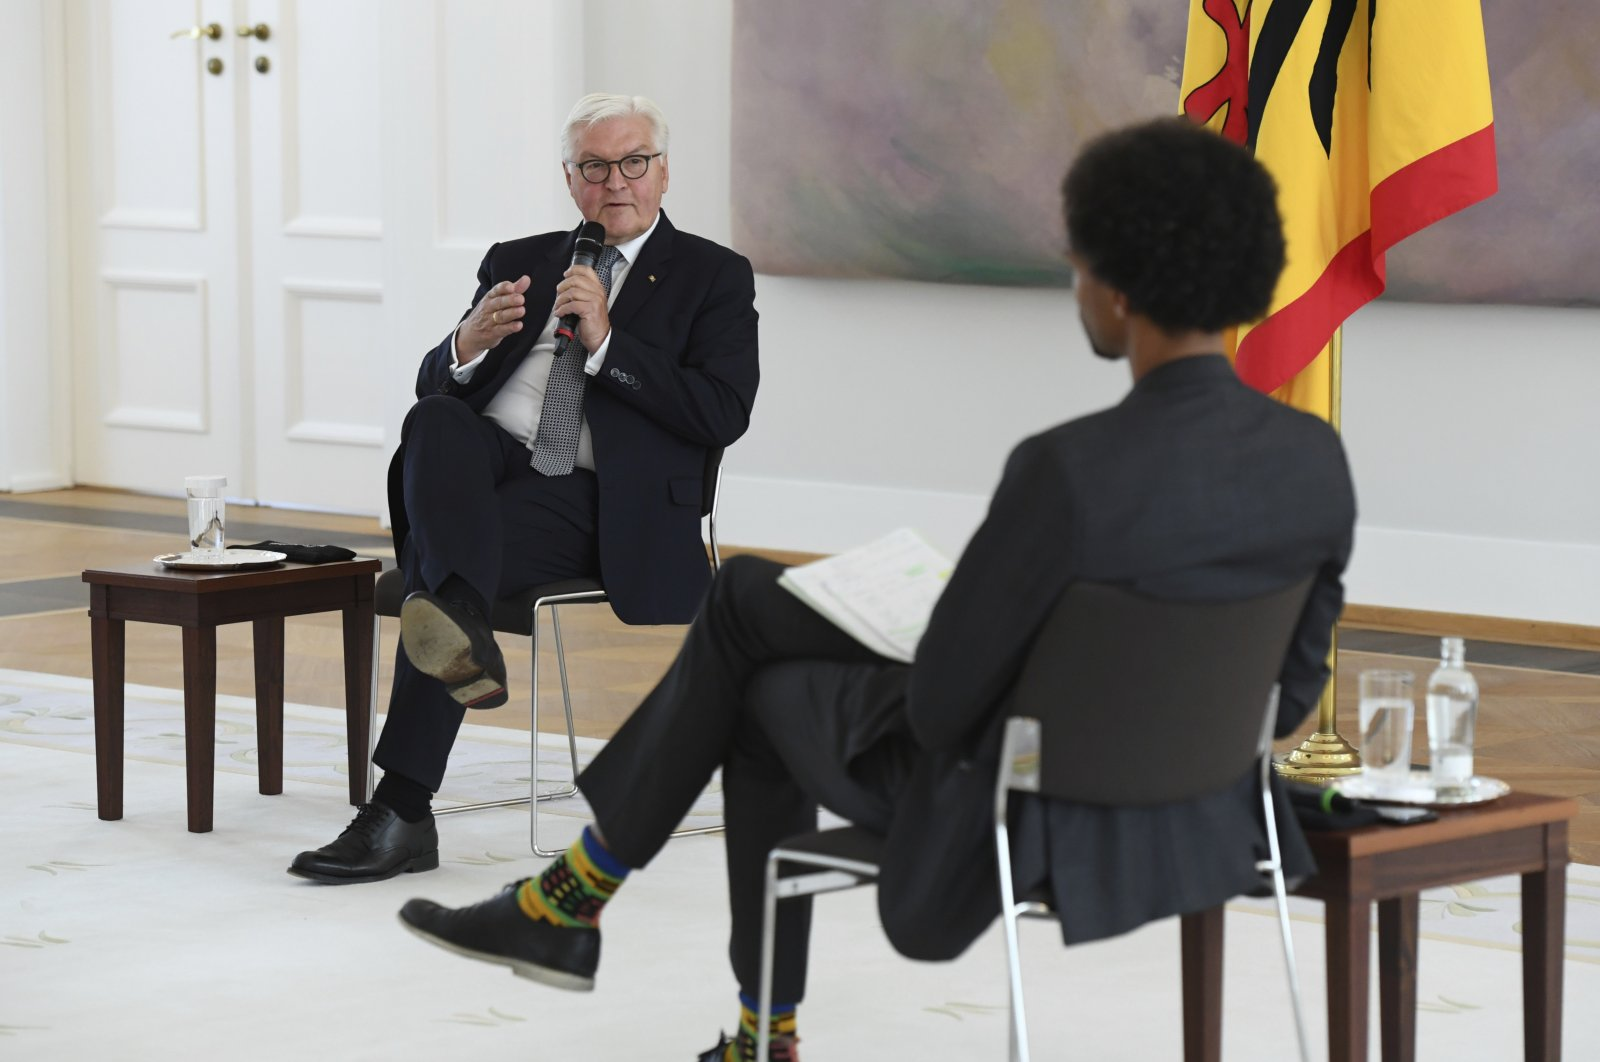 """Federal President Frank-Walter Steinmeier (L) talks to his guest Daniel Gyamerah, head of the """"Advocating for Inclusion"""" department of the Berlin-based think tank """"Citizens for Europe,"""" during a discussion round on experiences of racism and discrimination at Bellevue Palace, Berlin, June 16, 2020. (AP Photo)"""